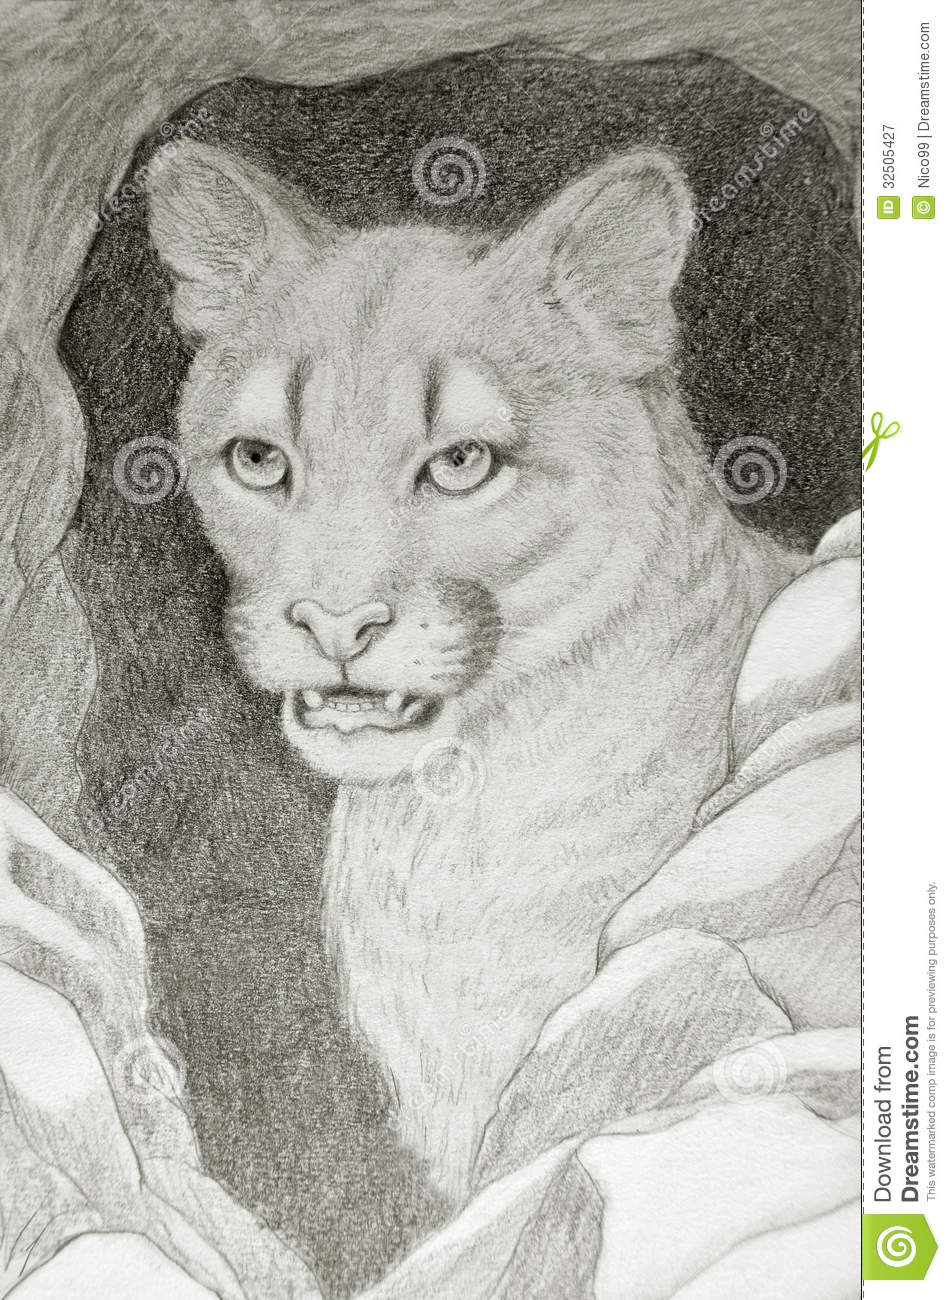 Cougar Face Line Drawing : Cougar face portrait royalty free stock photography